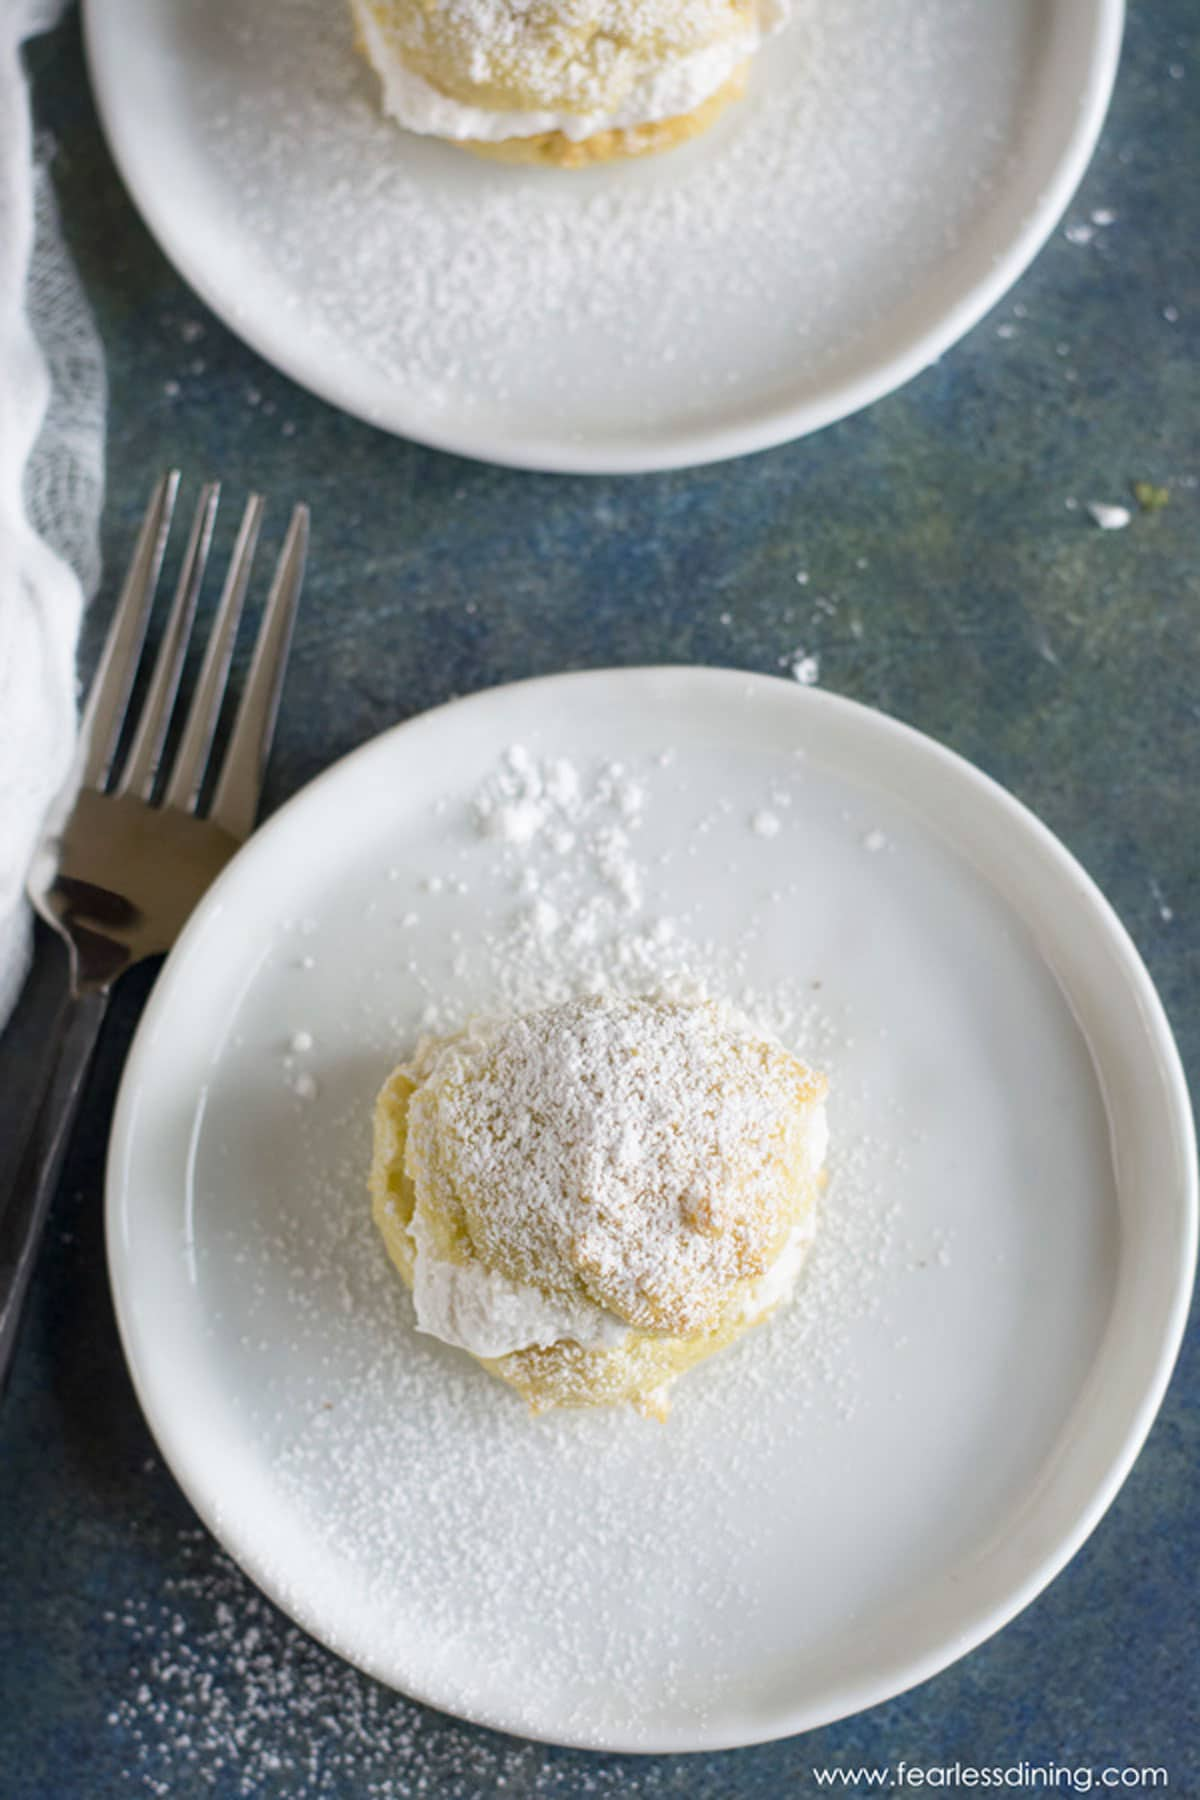 the top view of a cream puff on a plate